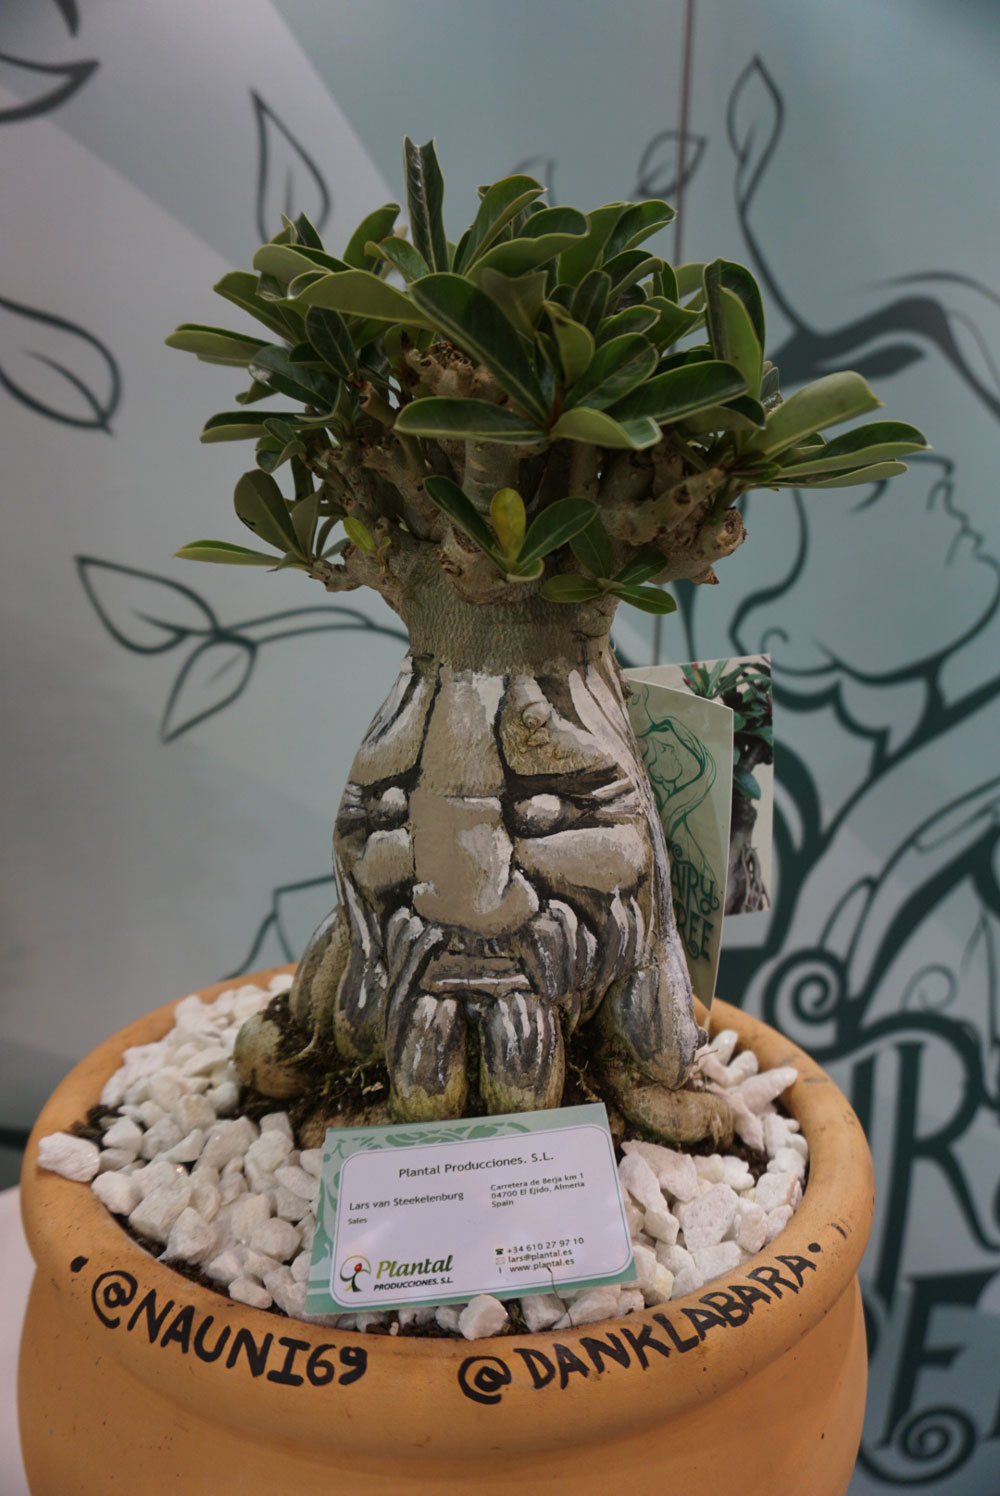 Face painted on a plant